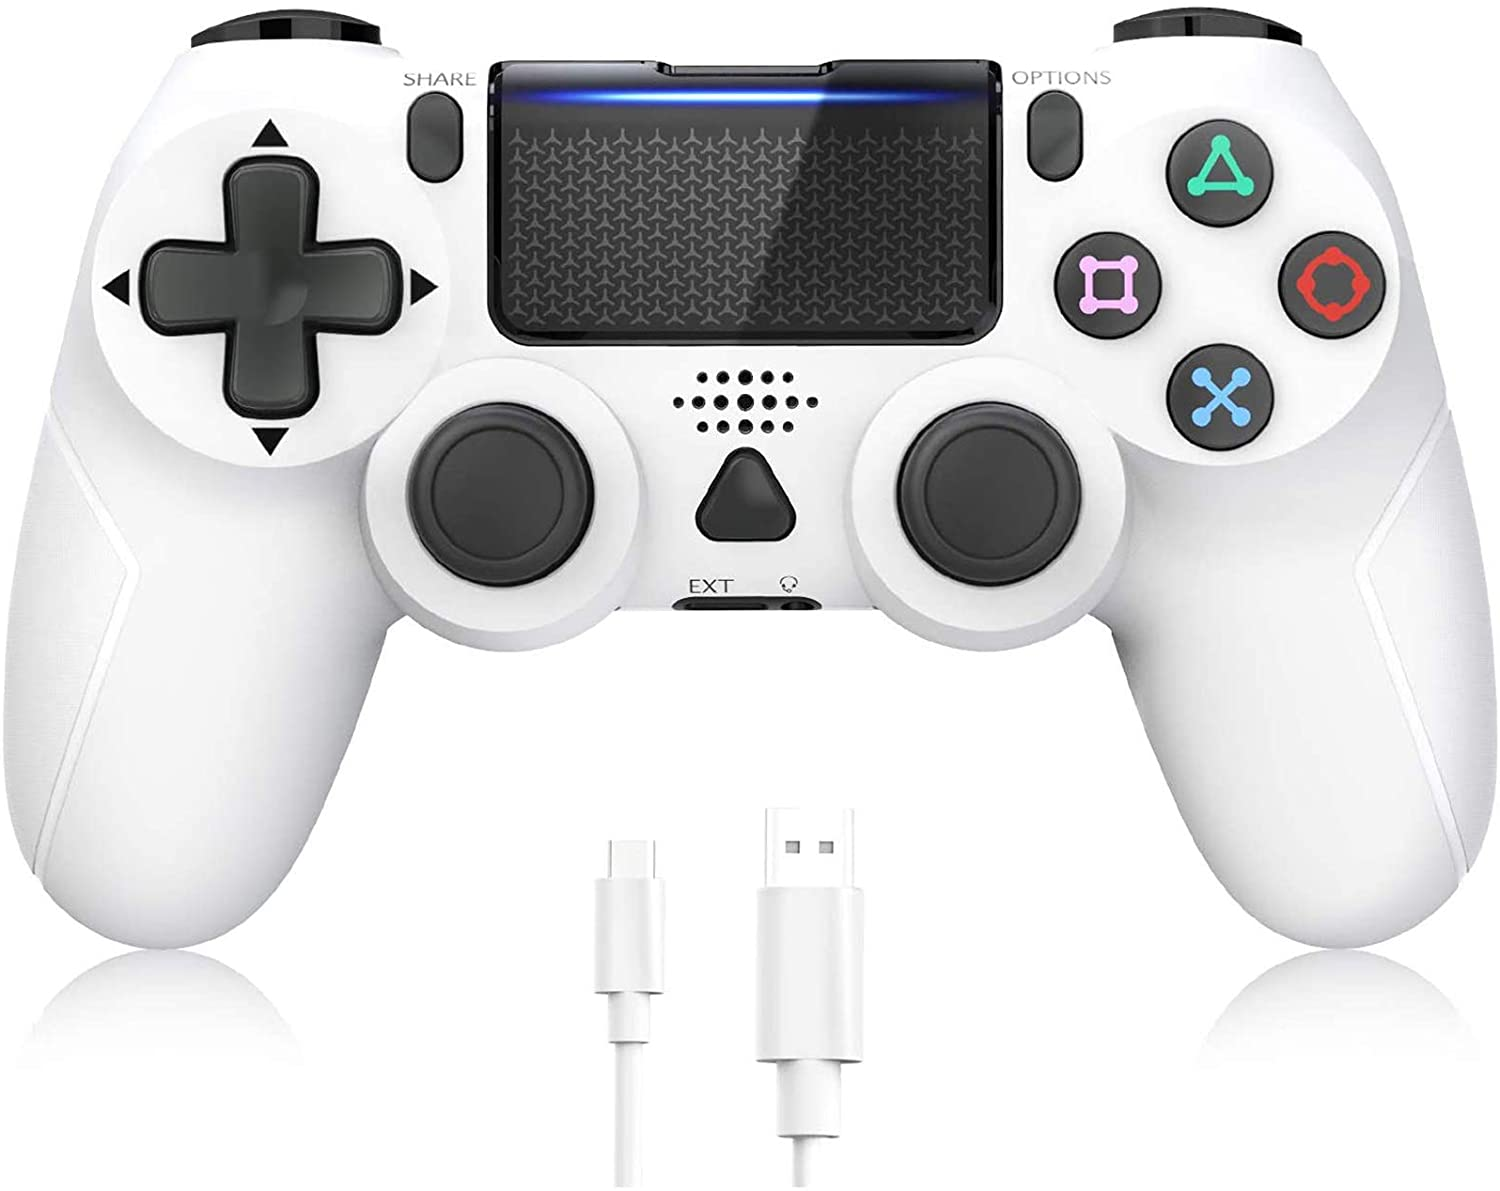 Controller for PS4, Y Team Wireless Controller Compatible with Playstation 4/Pro/Slim, Joystick Remote with Dual Motors, 6-axis Gyro and Audio Jack, 1000 mAh Battery [2020 New Version]